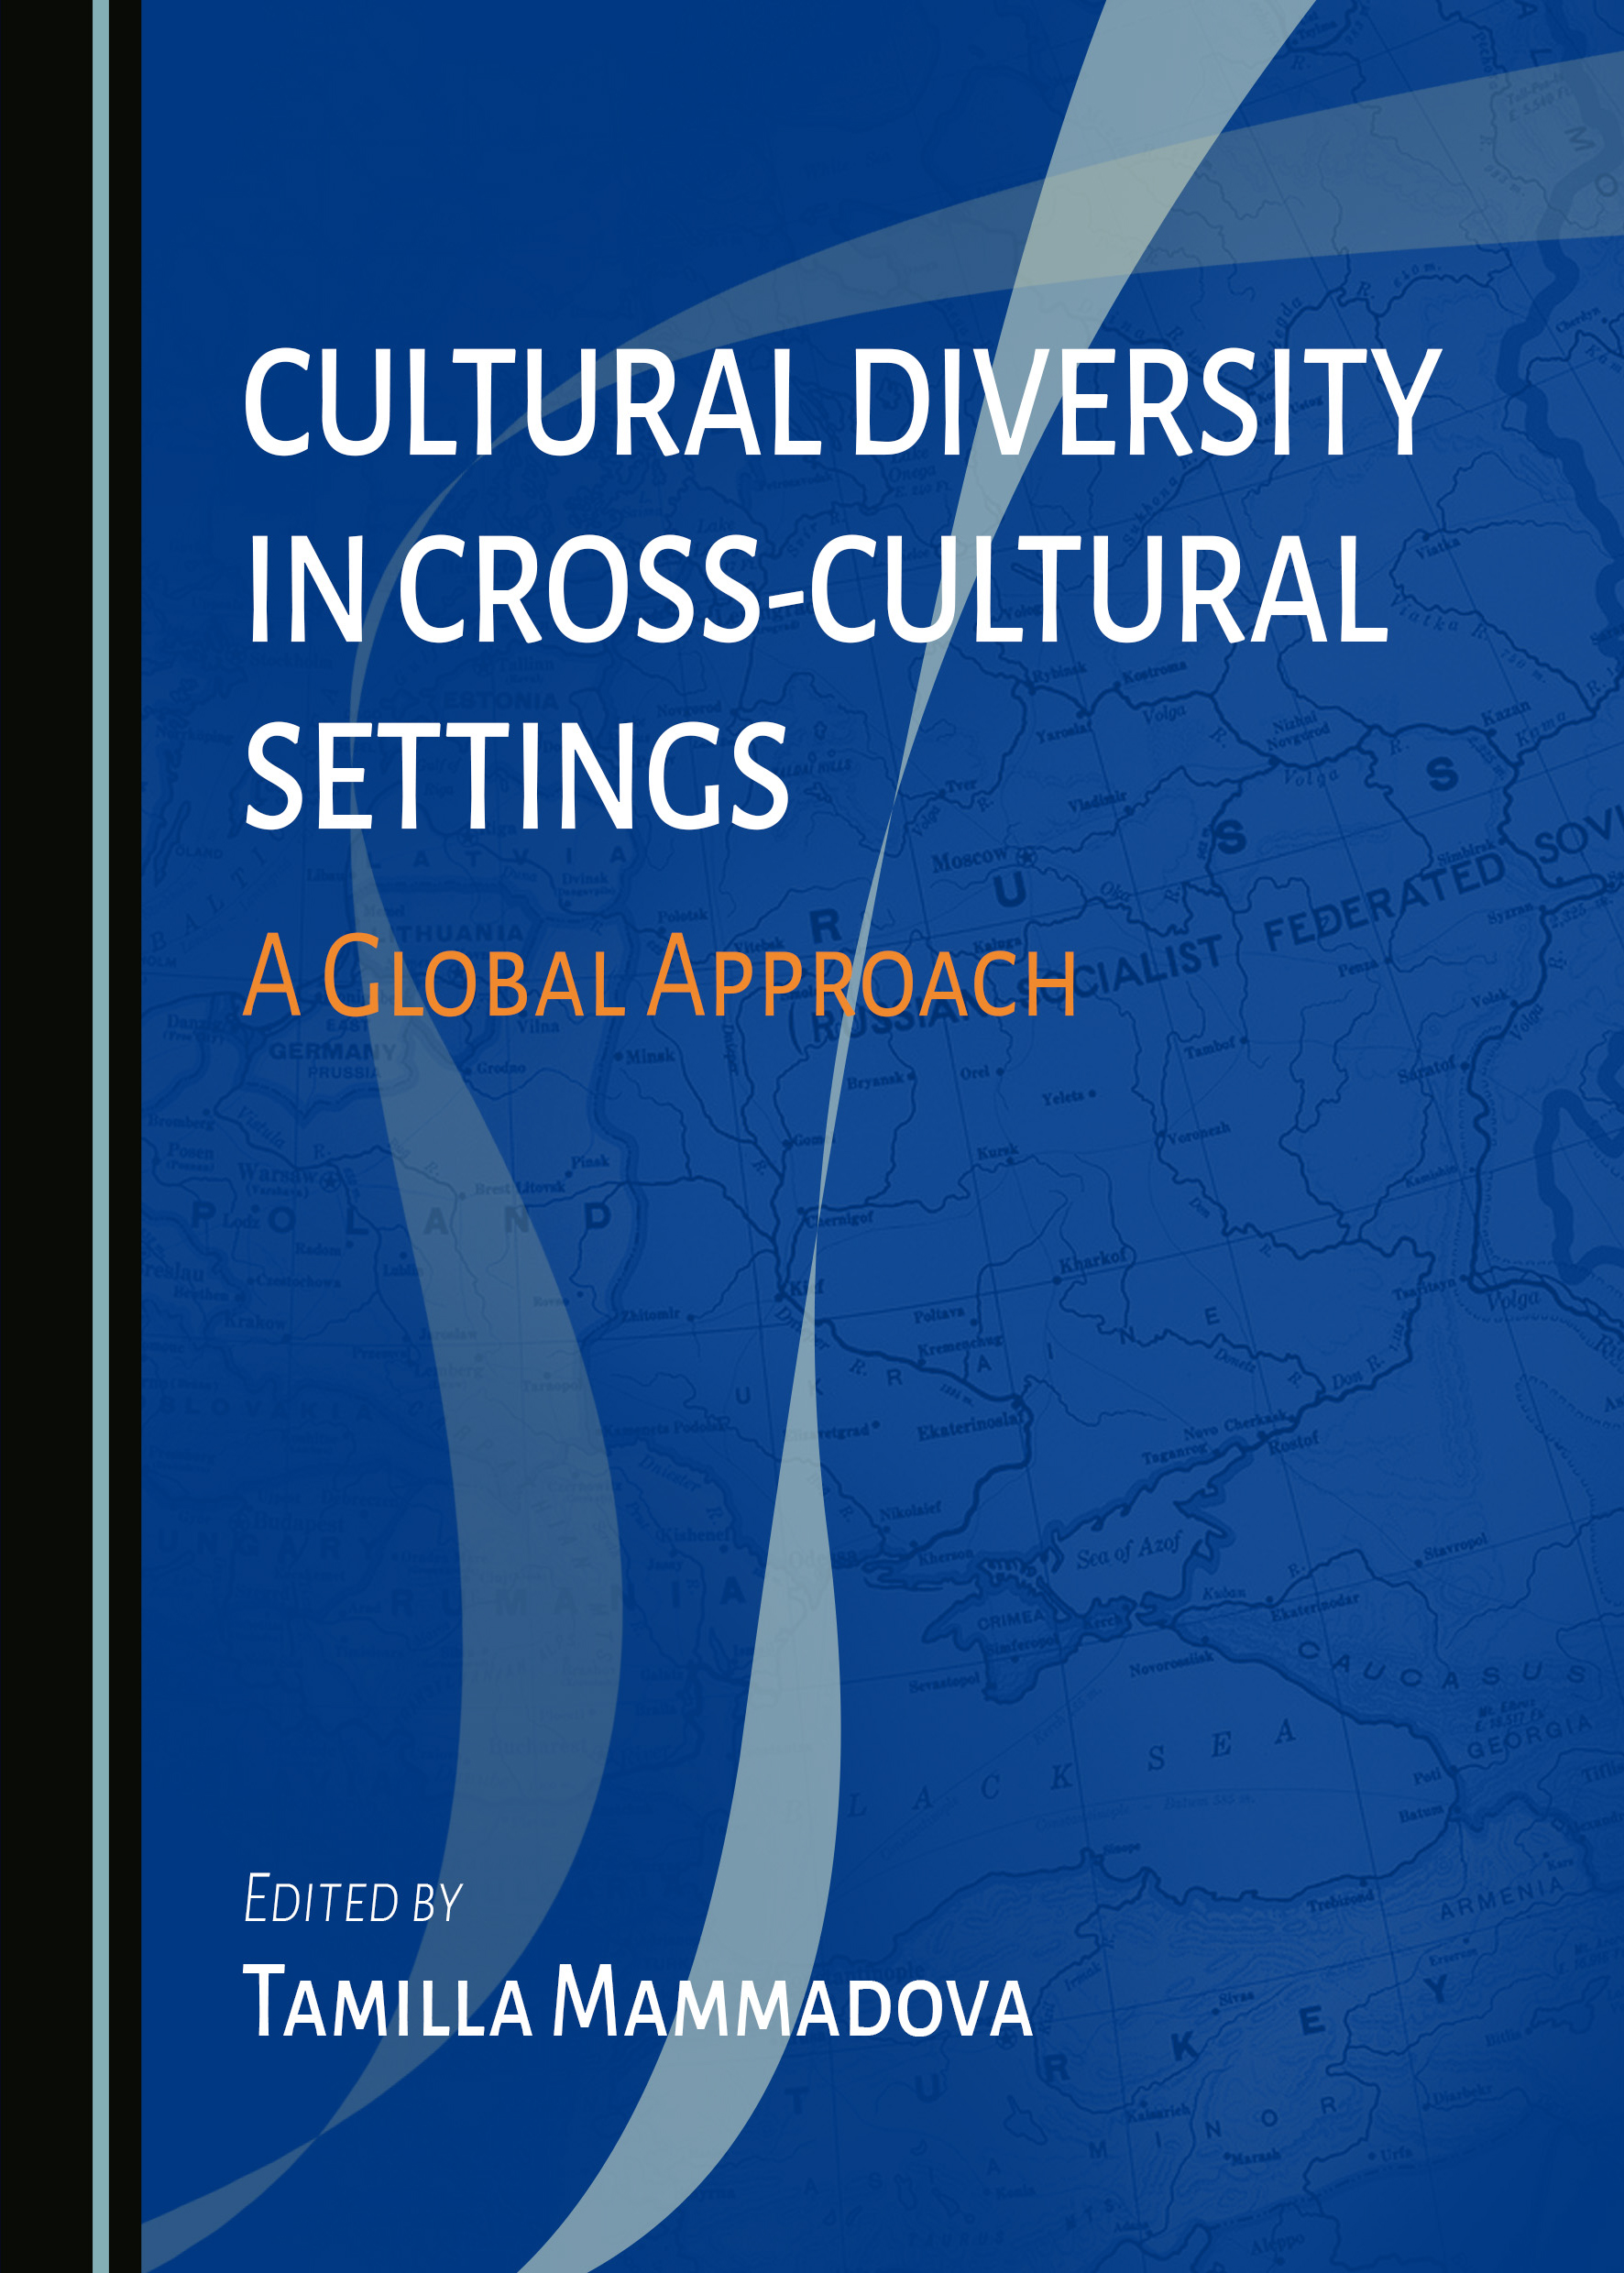 Cultural Diversity in Cross-Cultural Settings: A Global Approach